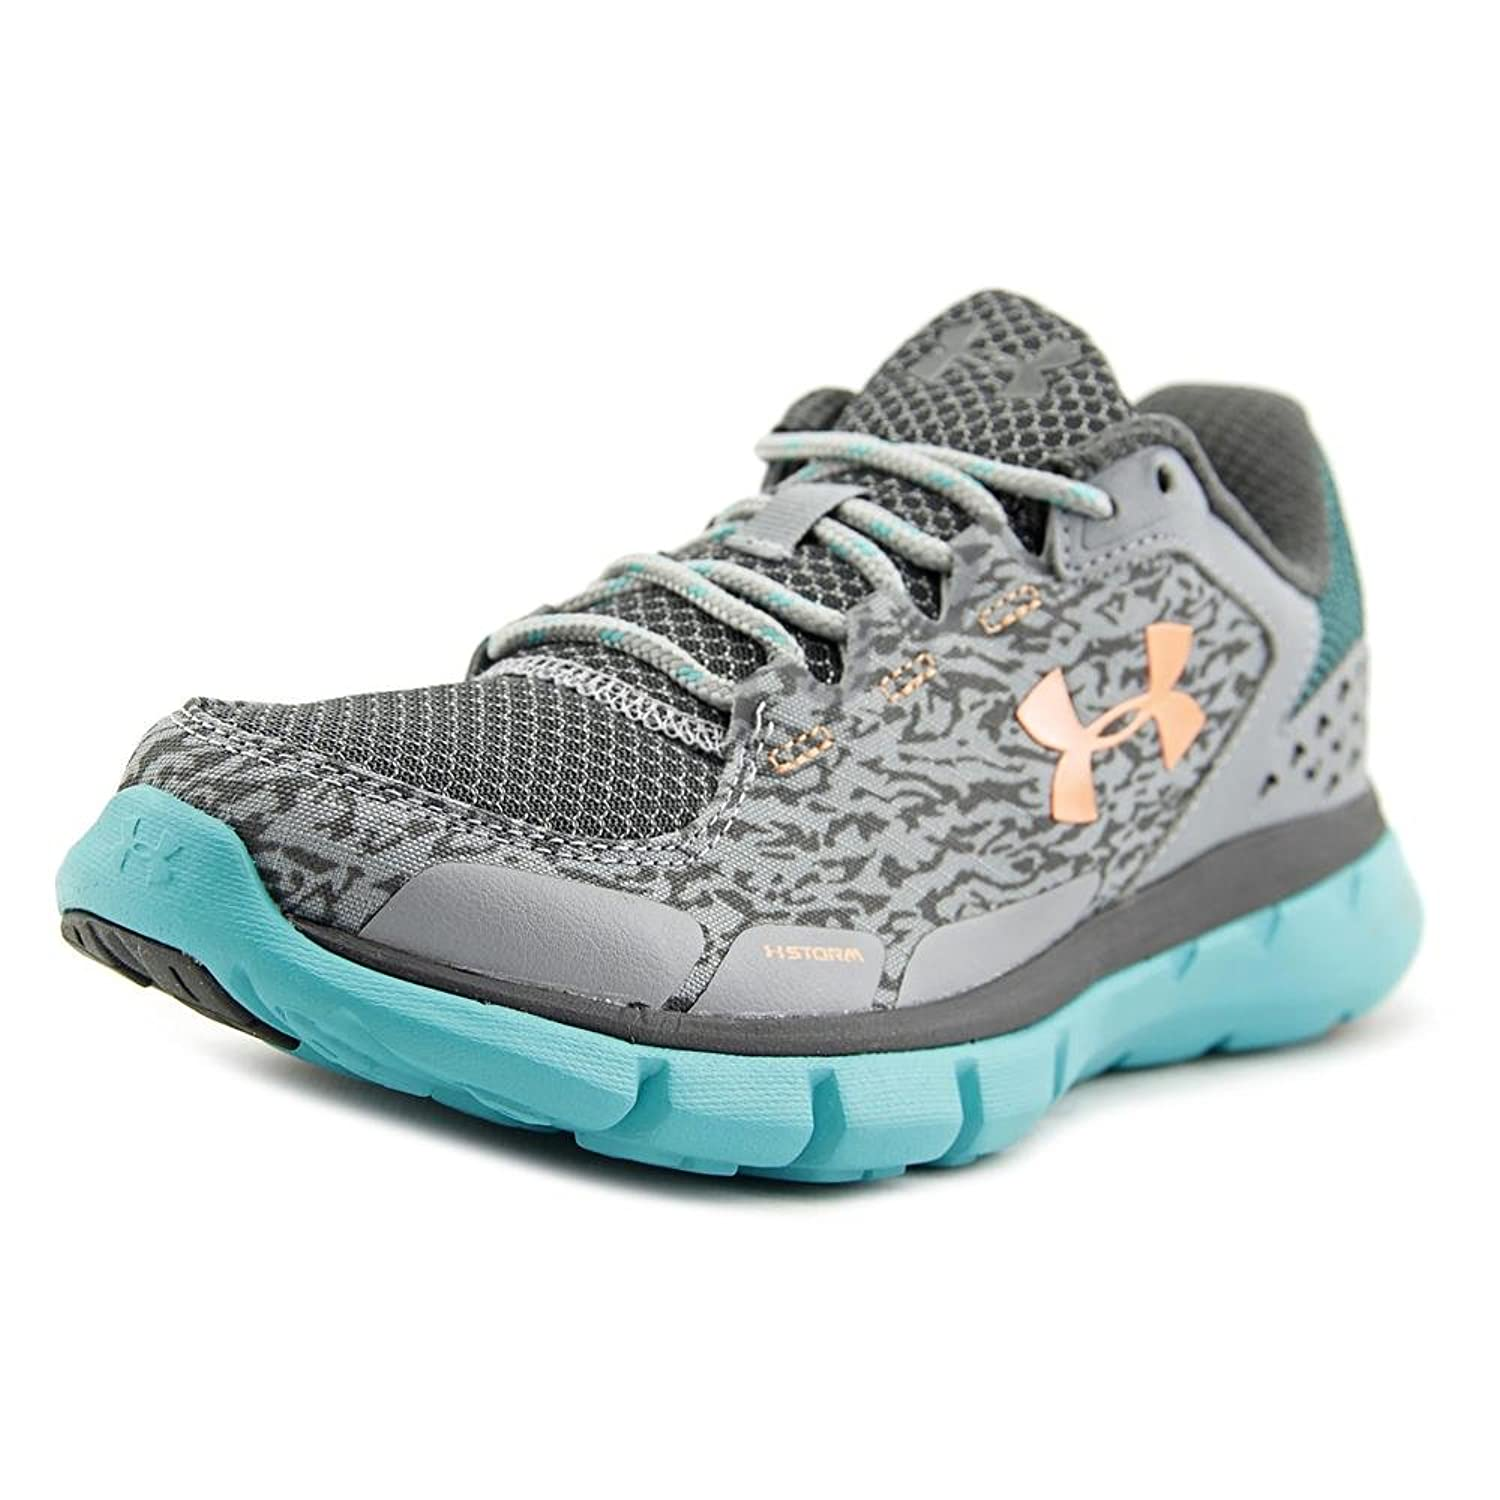 Under Armour Women's UA Micro G Velocity Storm Running Shoes